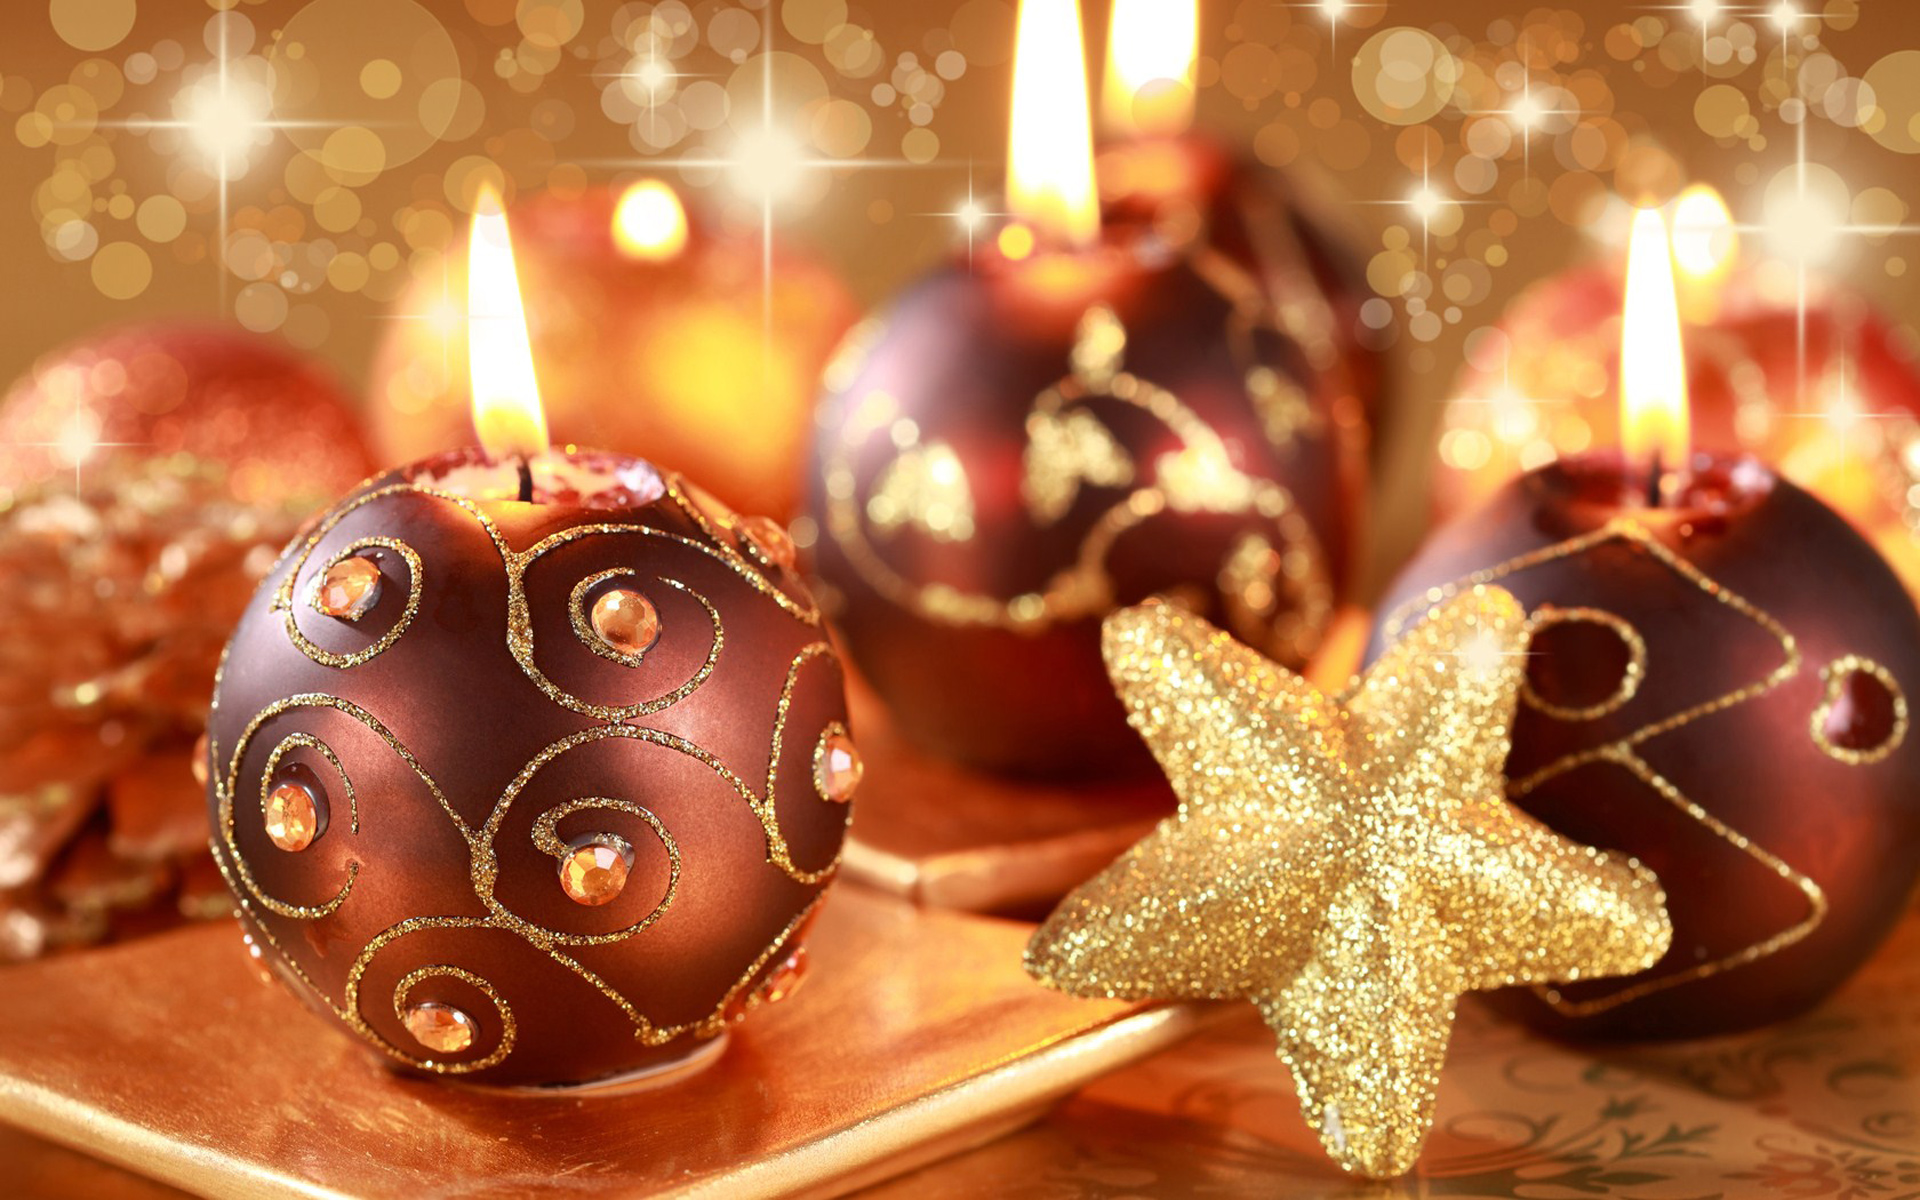 Lovely Christmas Candles Wallpaper 41083 1920x1200 px ...